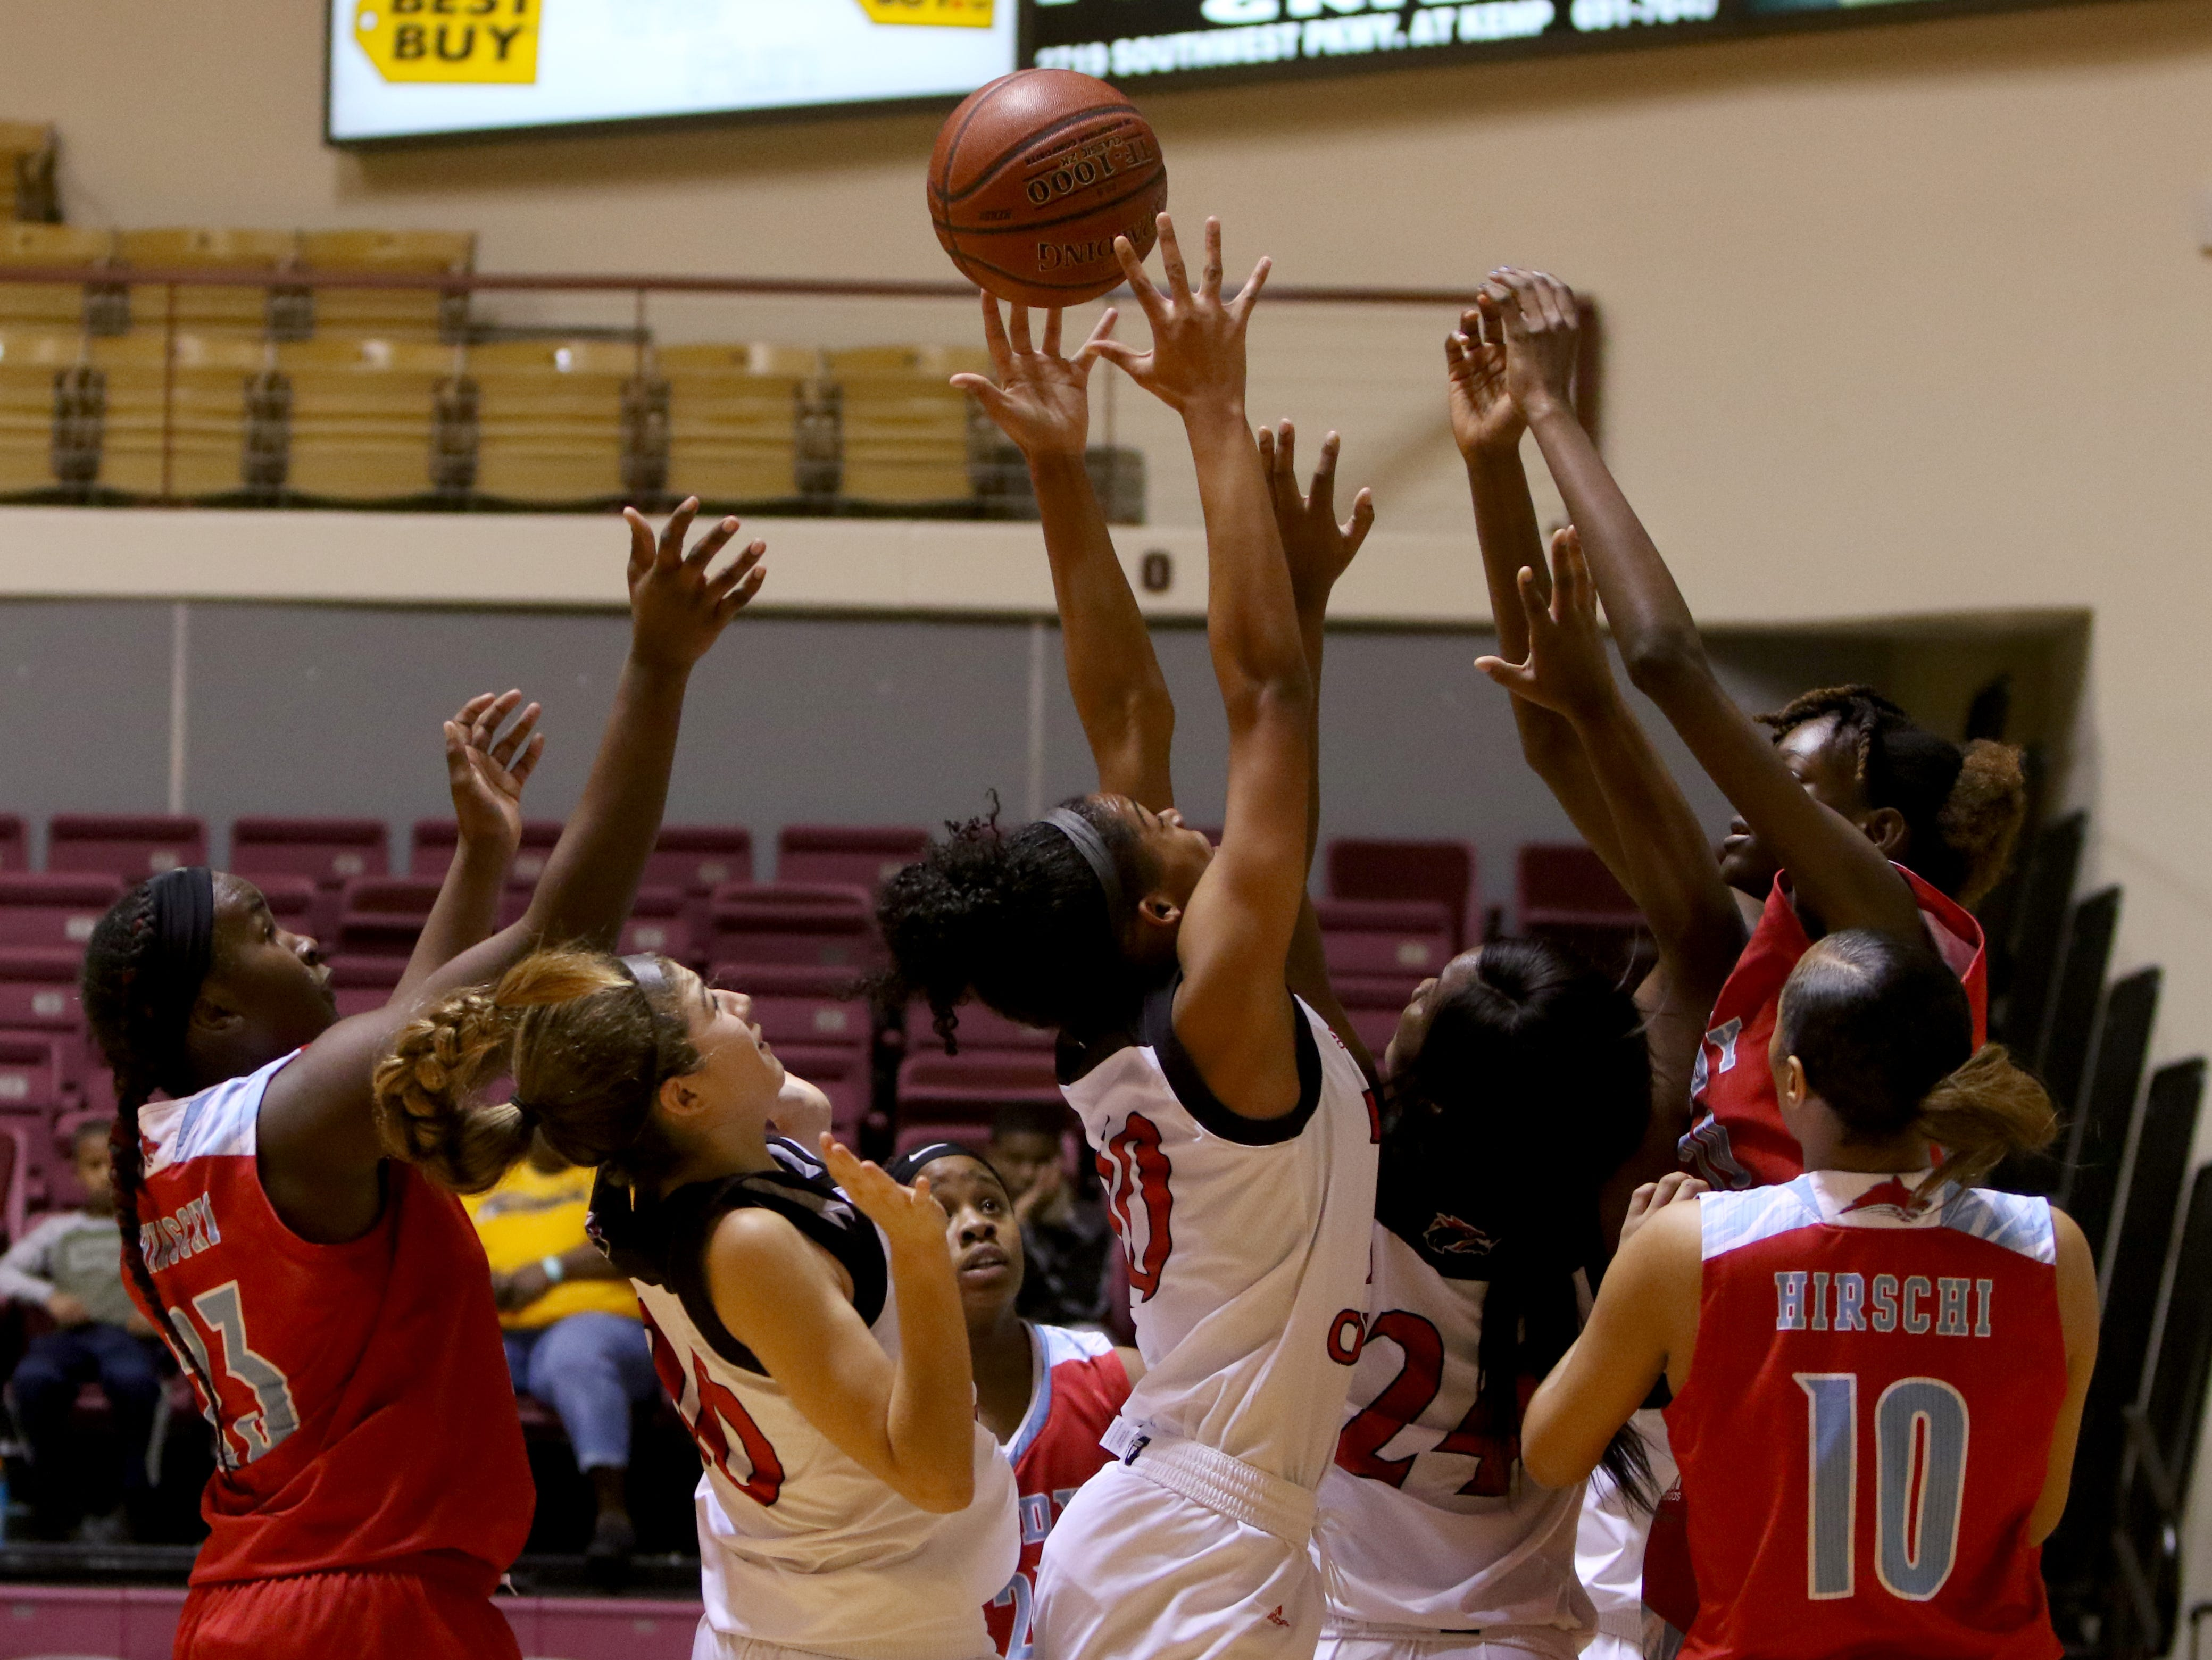 Hirschi and Wichita Falls High School players reach for the rebound Saturday, Dec. 1, 2018, at D.L. Ligon Coliseum at Midwestern State University.